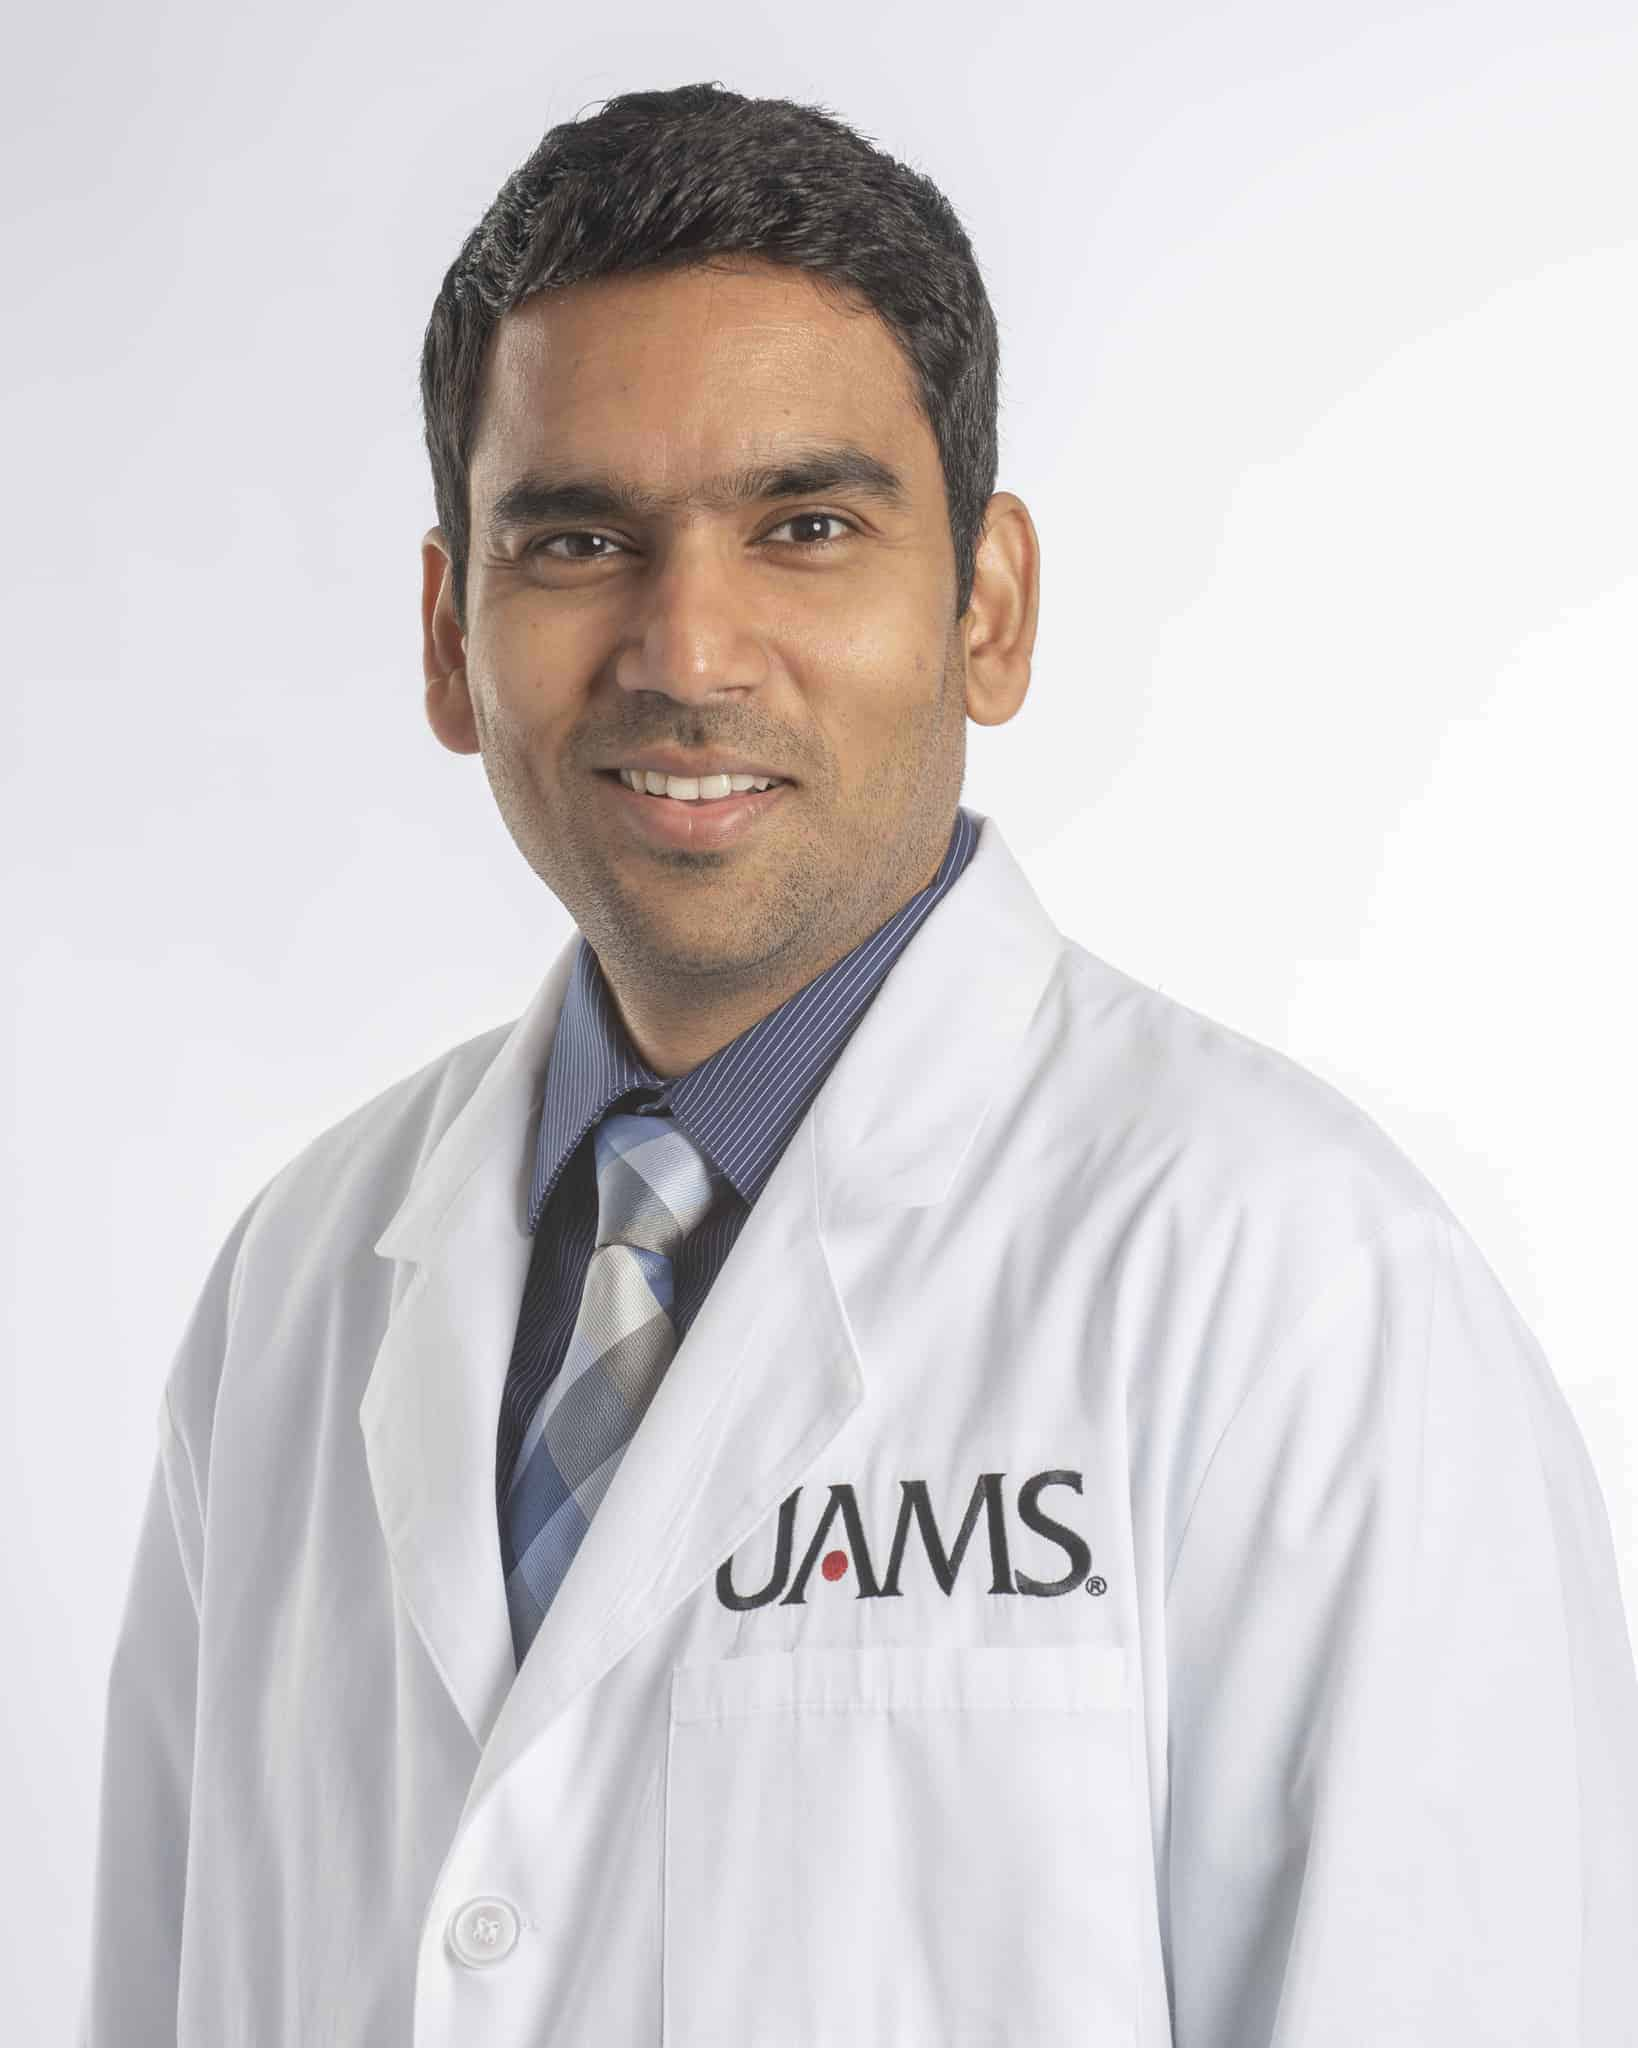 Subodh Devabhaktuni, M.D., a cardiologist and electrophysiologist who specializes in heart rhythm problems, has joined the University of Arkansas for Medical Sciences.